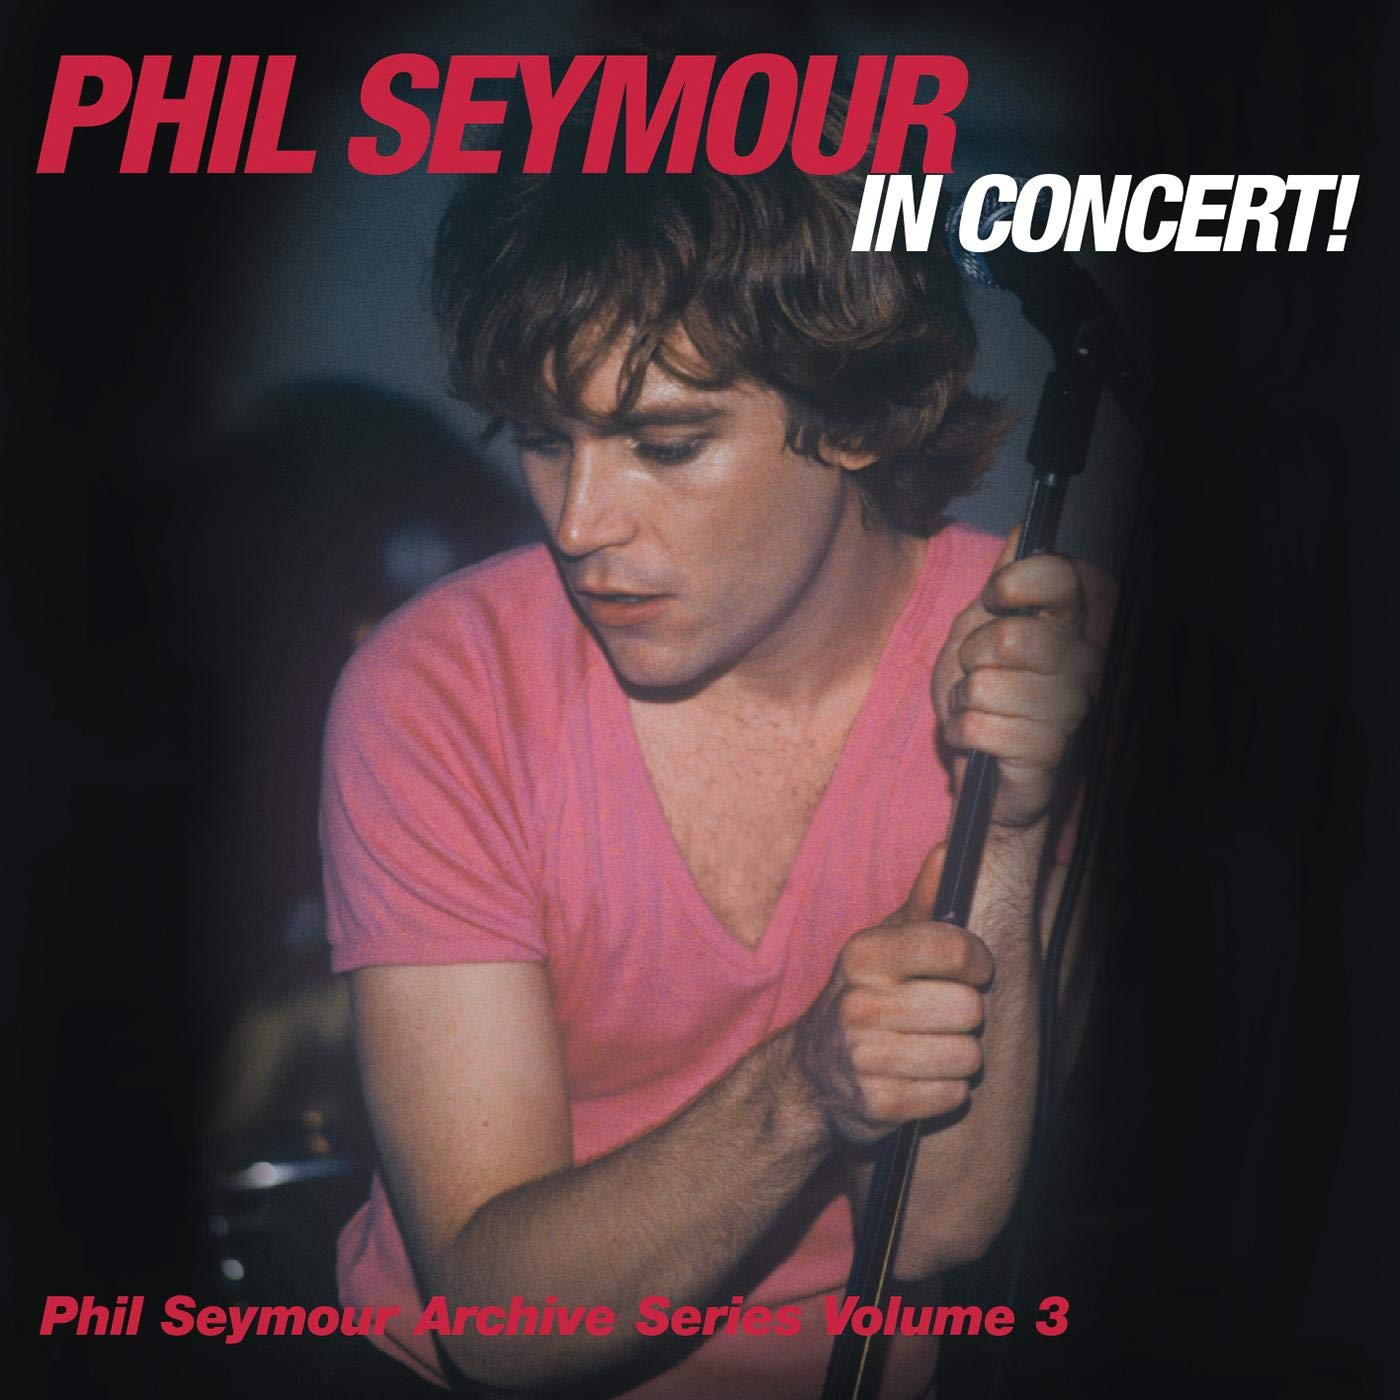 Phil Seymour - Archive Series Vol. 3